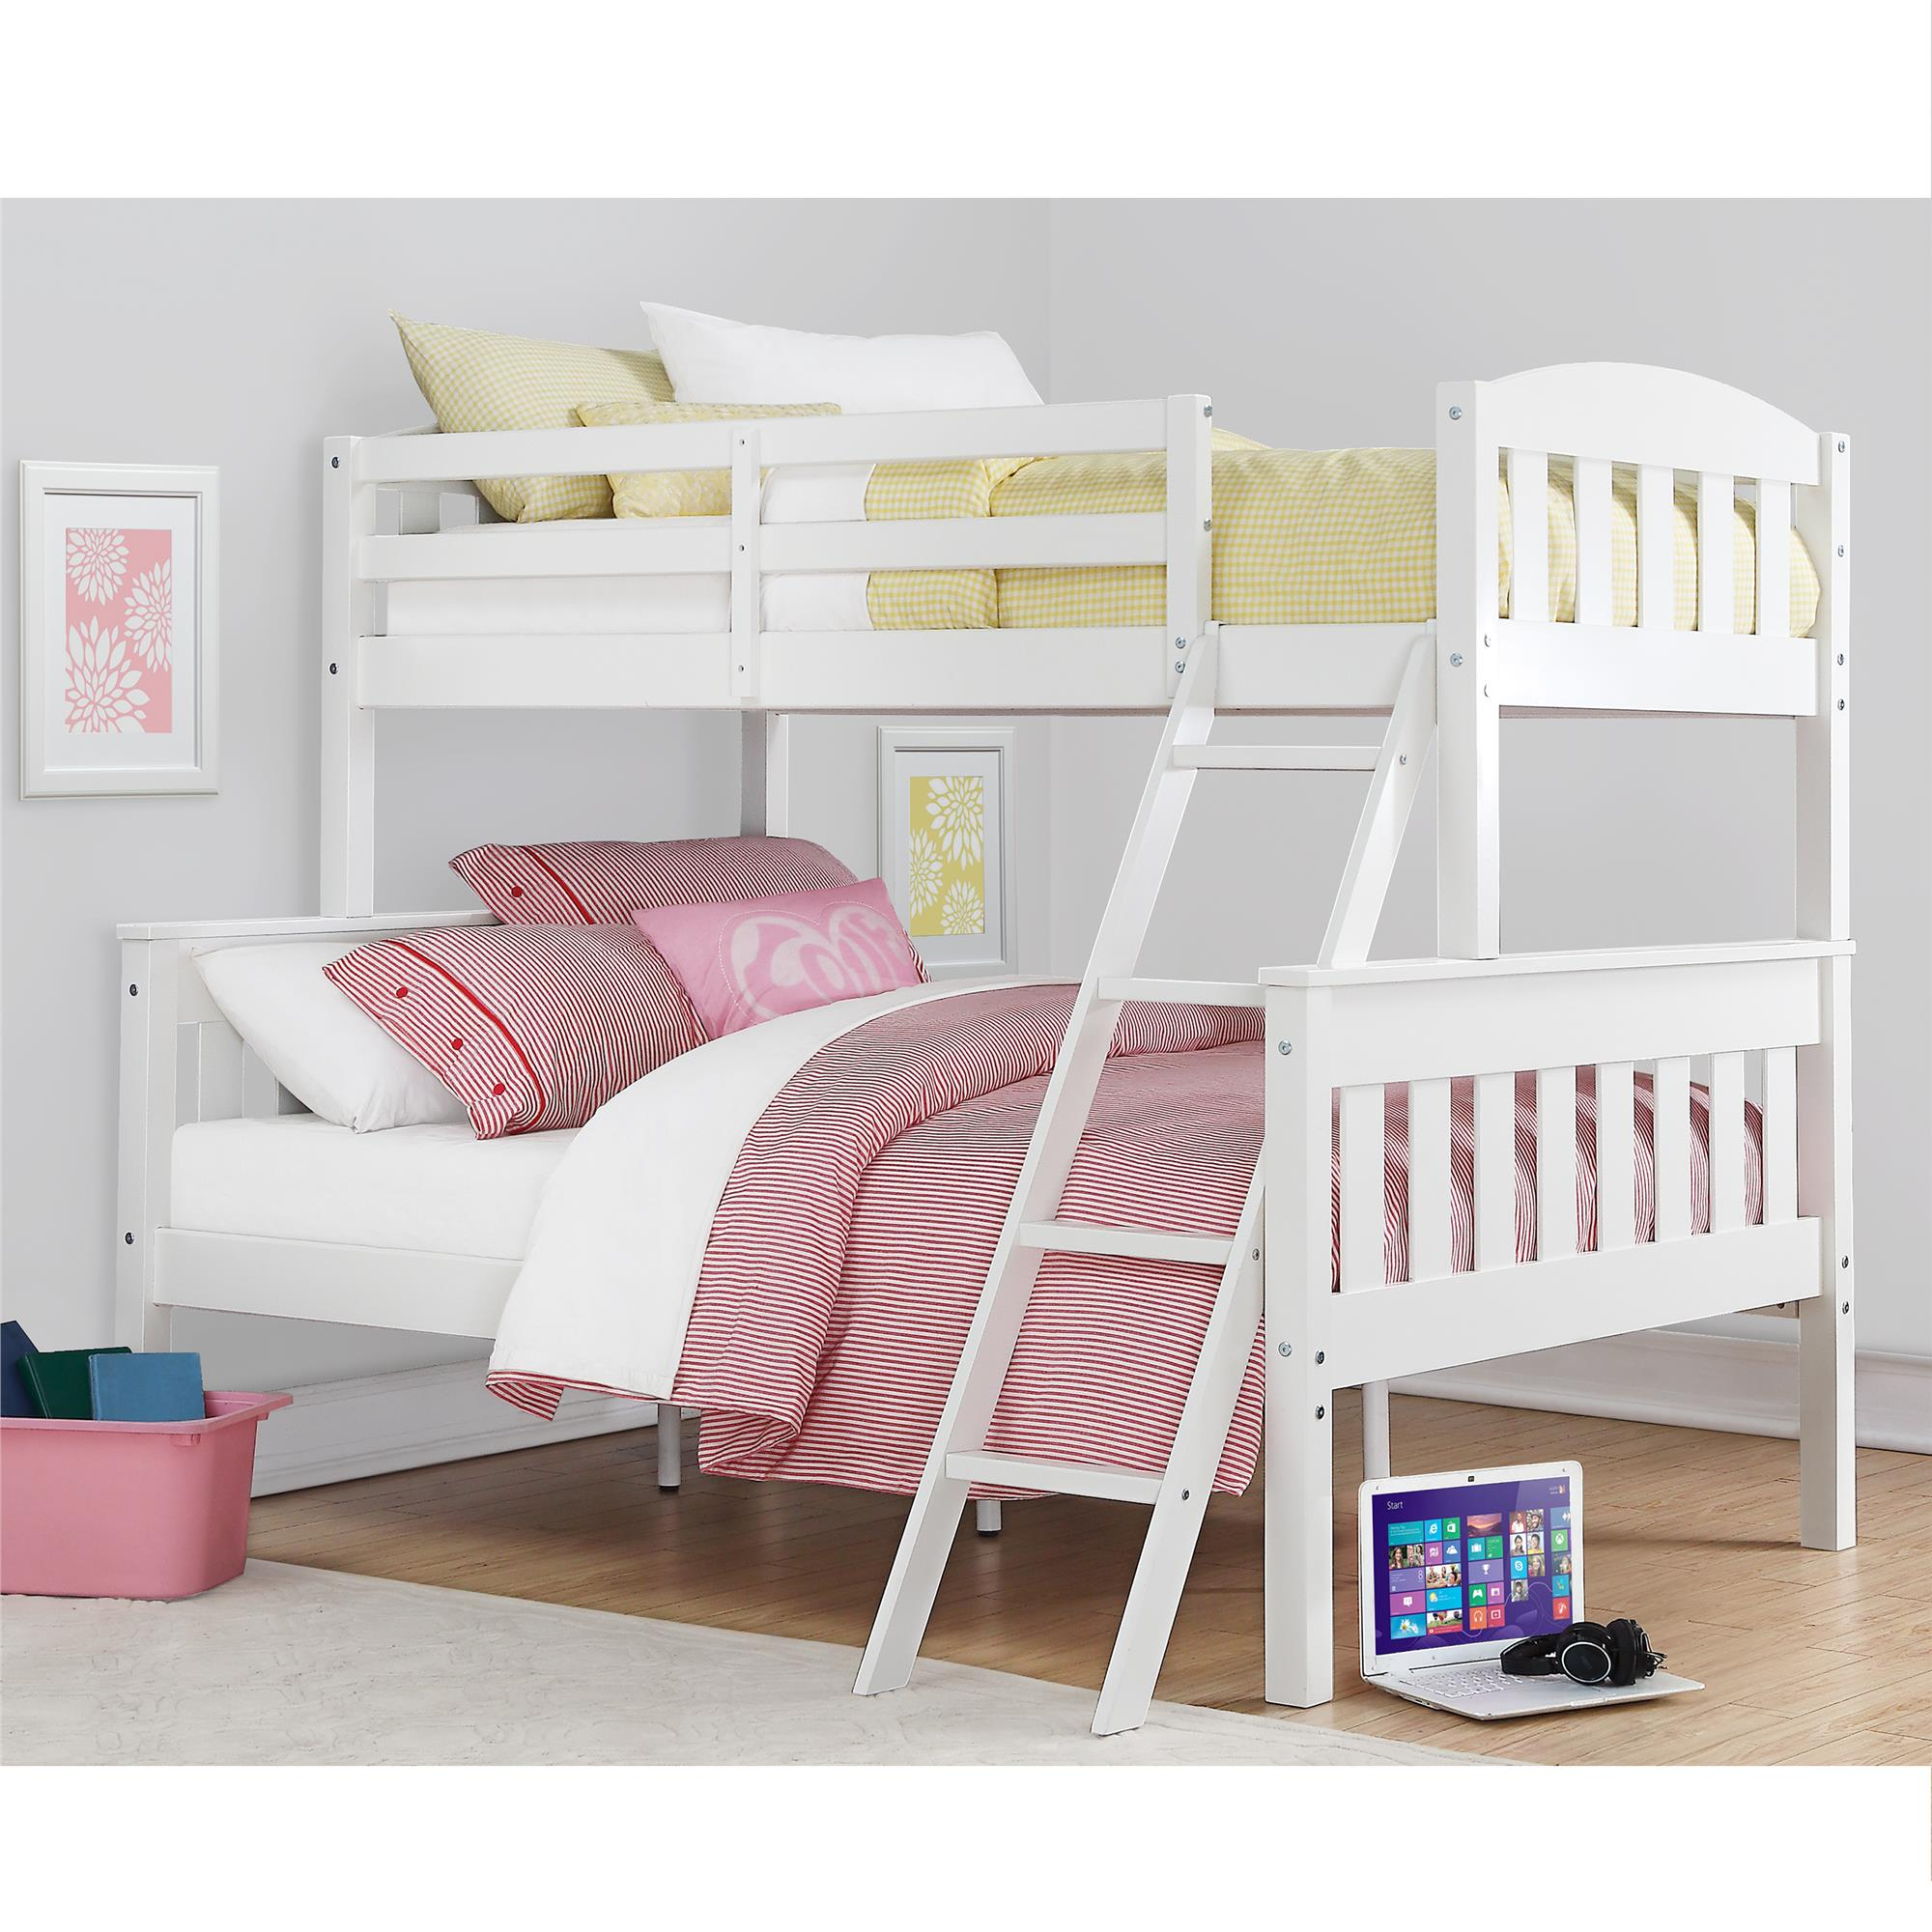 Dorel Home Furnishings Airlie White Twin Over Full Bunk Bed